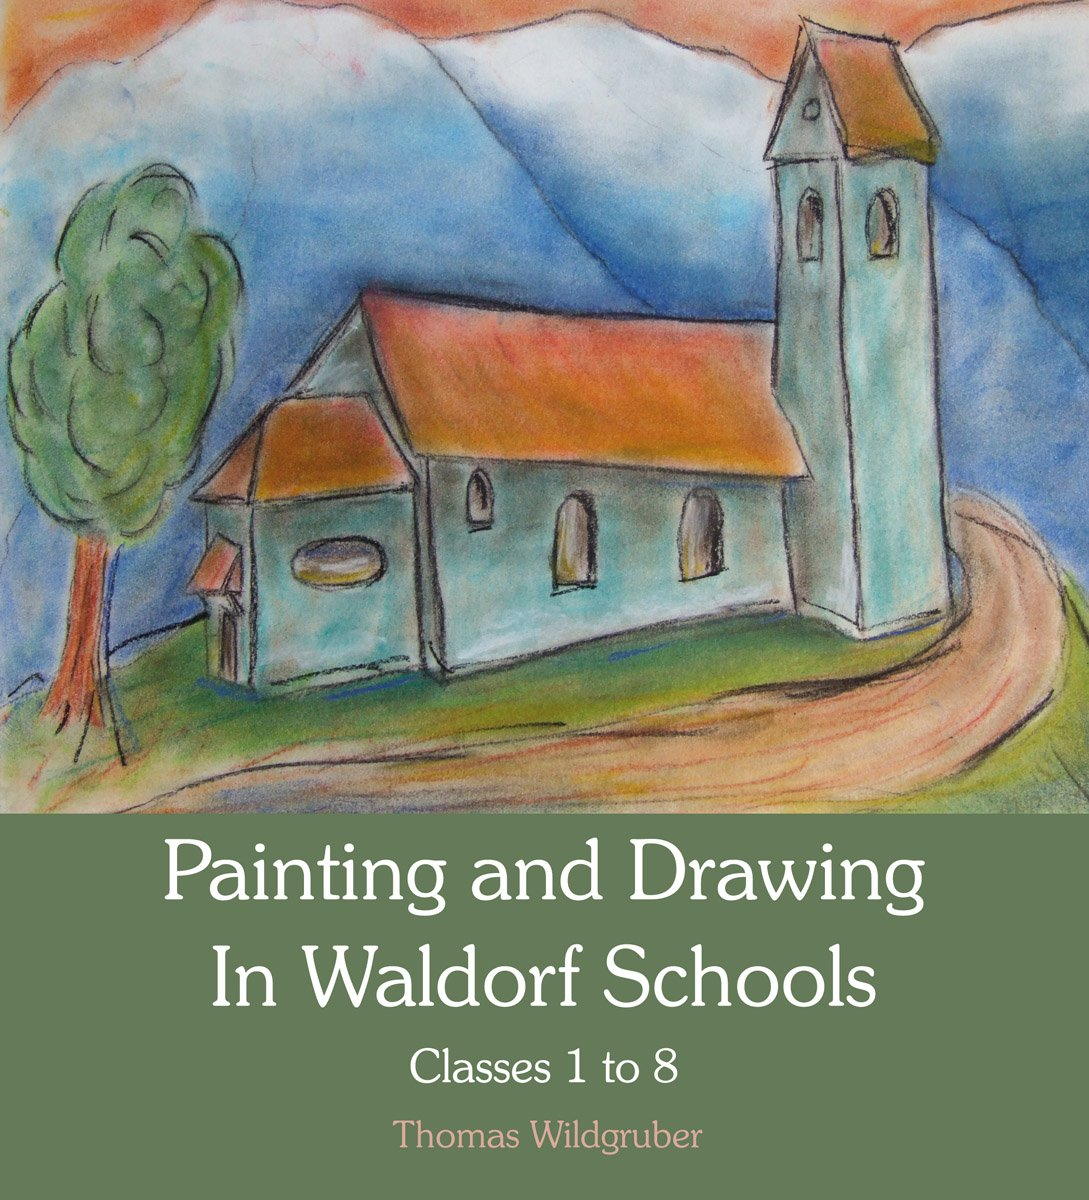 Painting and drawing in waldorf schools classes 1 to 8 paperback sep 25 2012